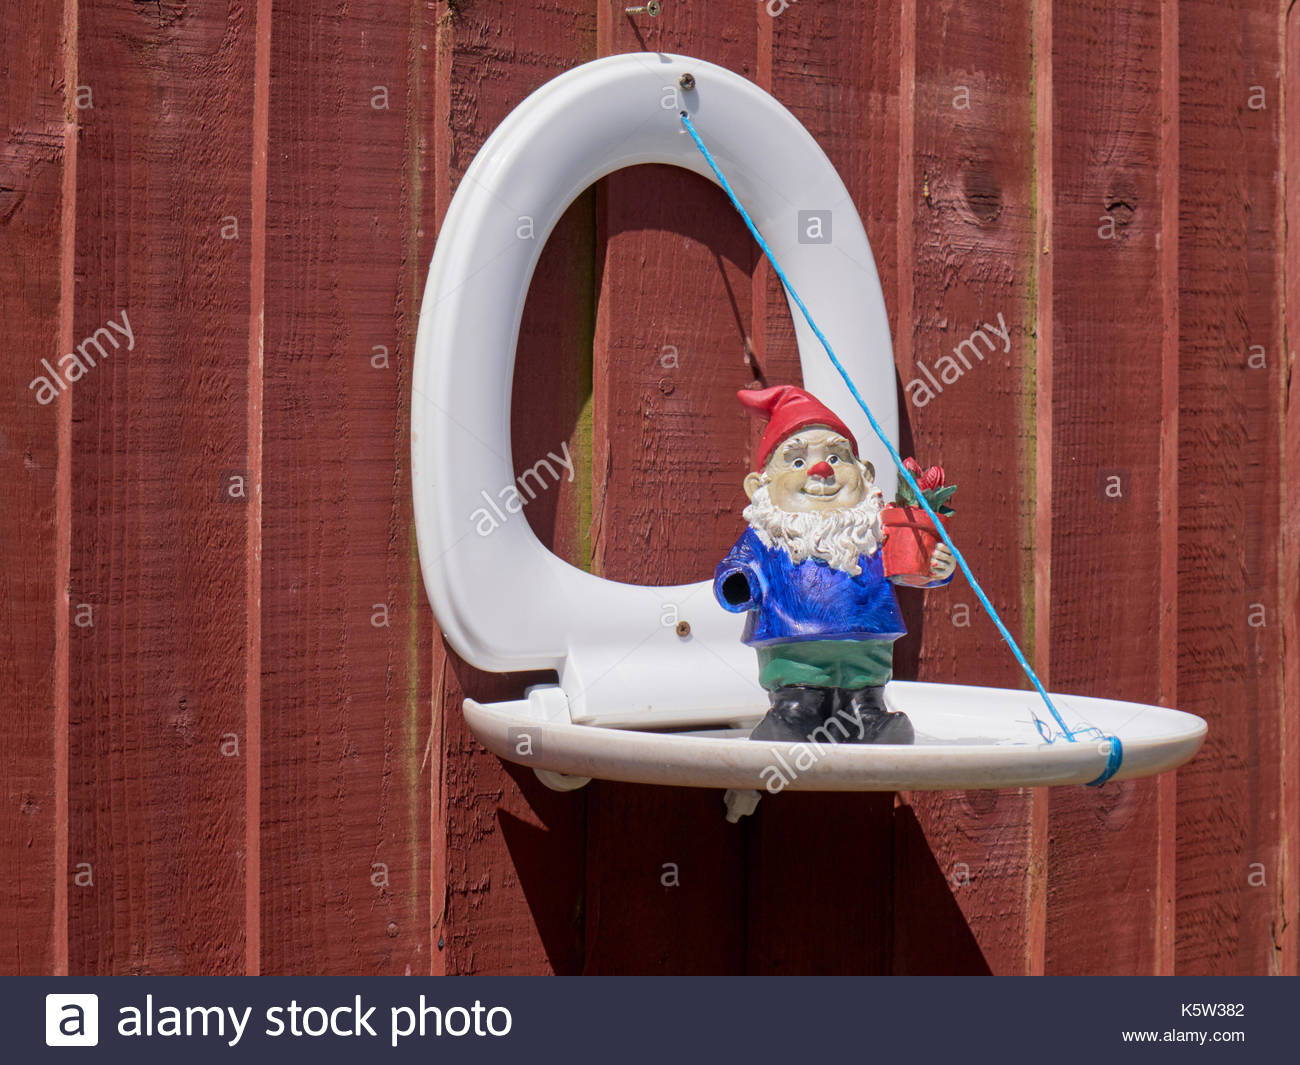 A white plastic toilet seat reused as a garden ornament fixed to a brown wooden fencing panel with a garden gnome in the uk - Stock Image